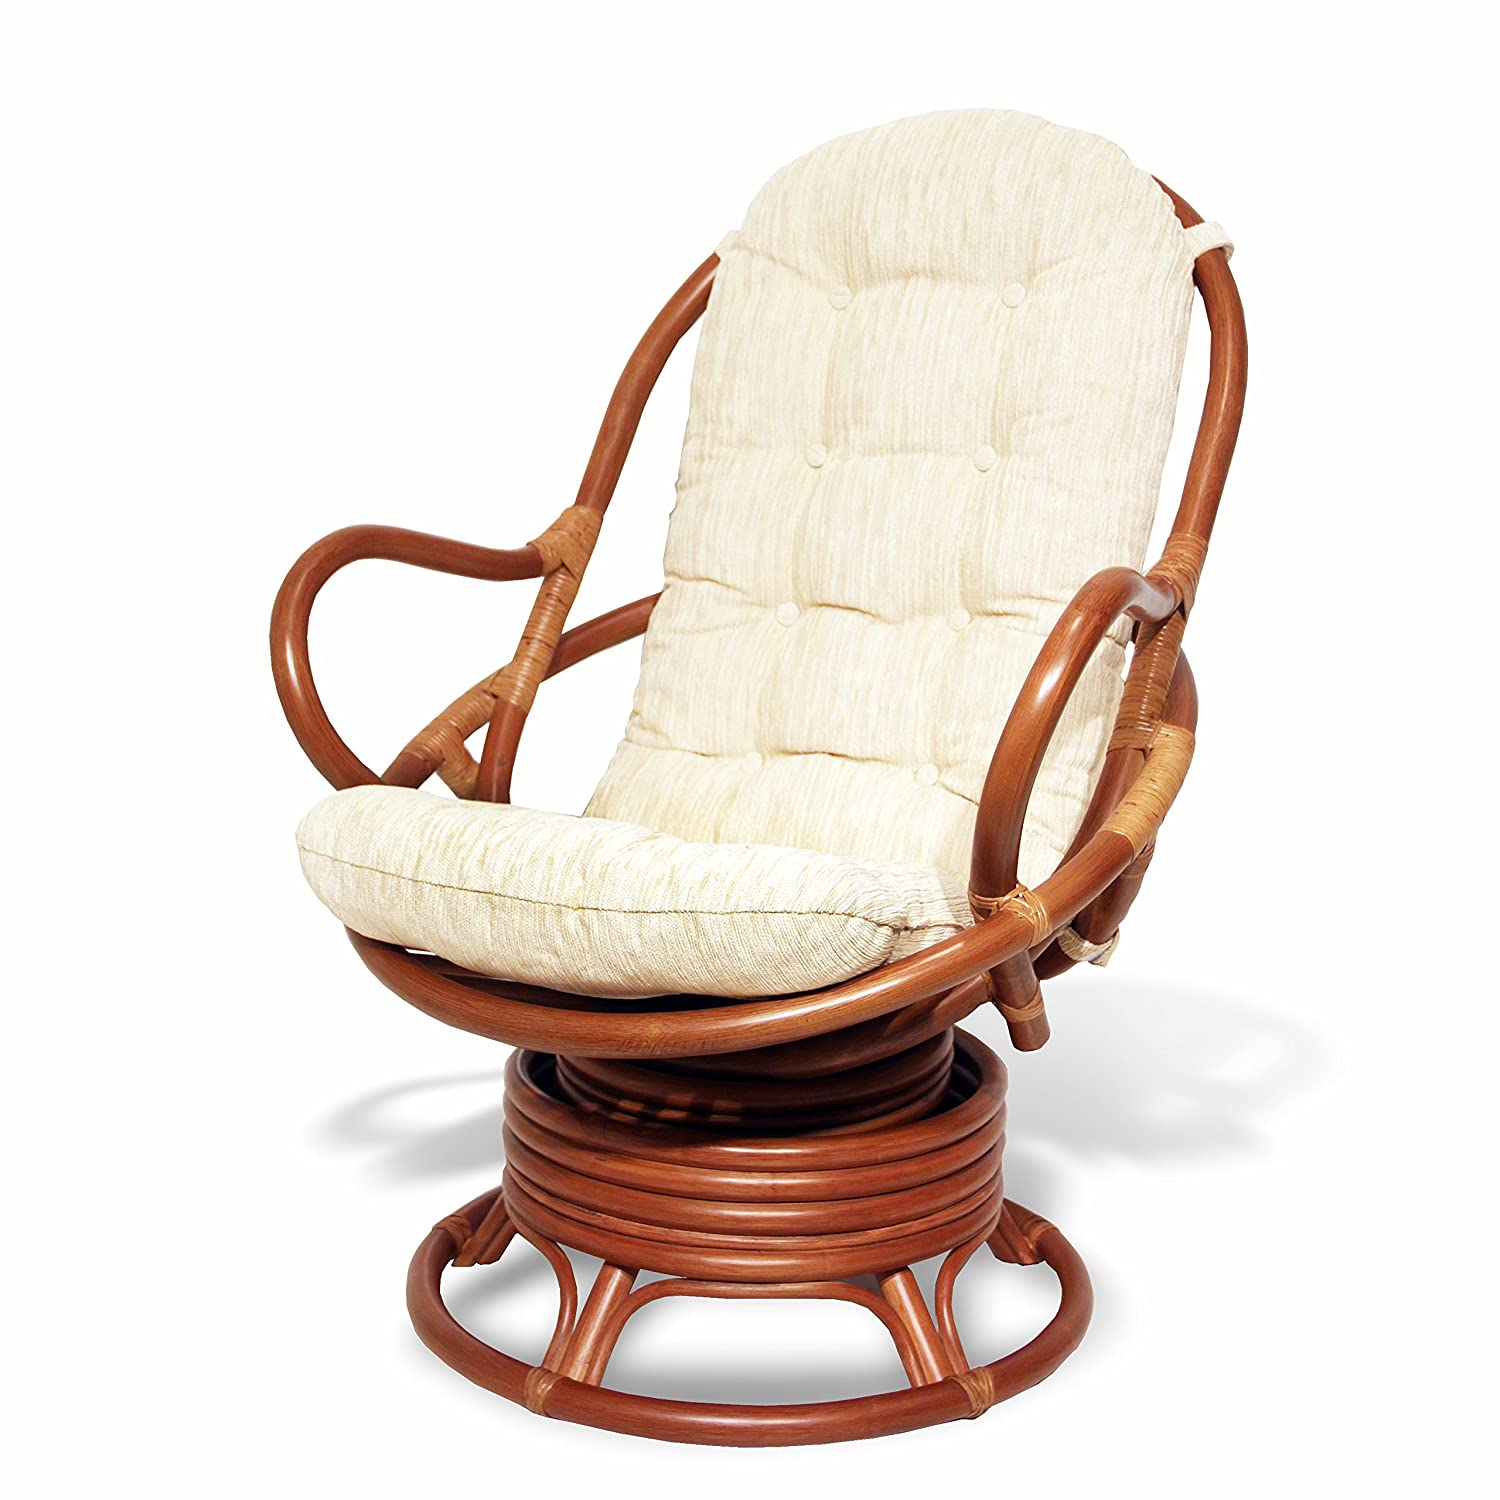 High Quality Amazon.com: Java Swivel Rocking Chair Colonial With Cushion Handmade  Natural Wicker Rattan Furniture: Kitchen U0026 Dining